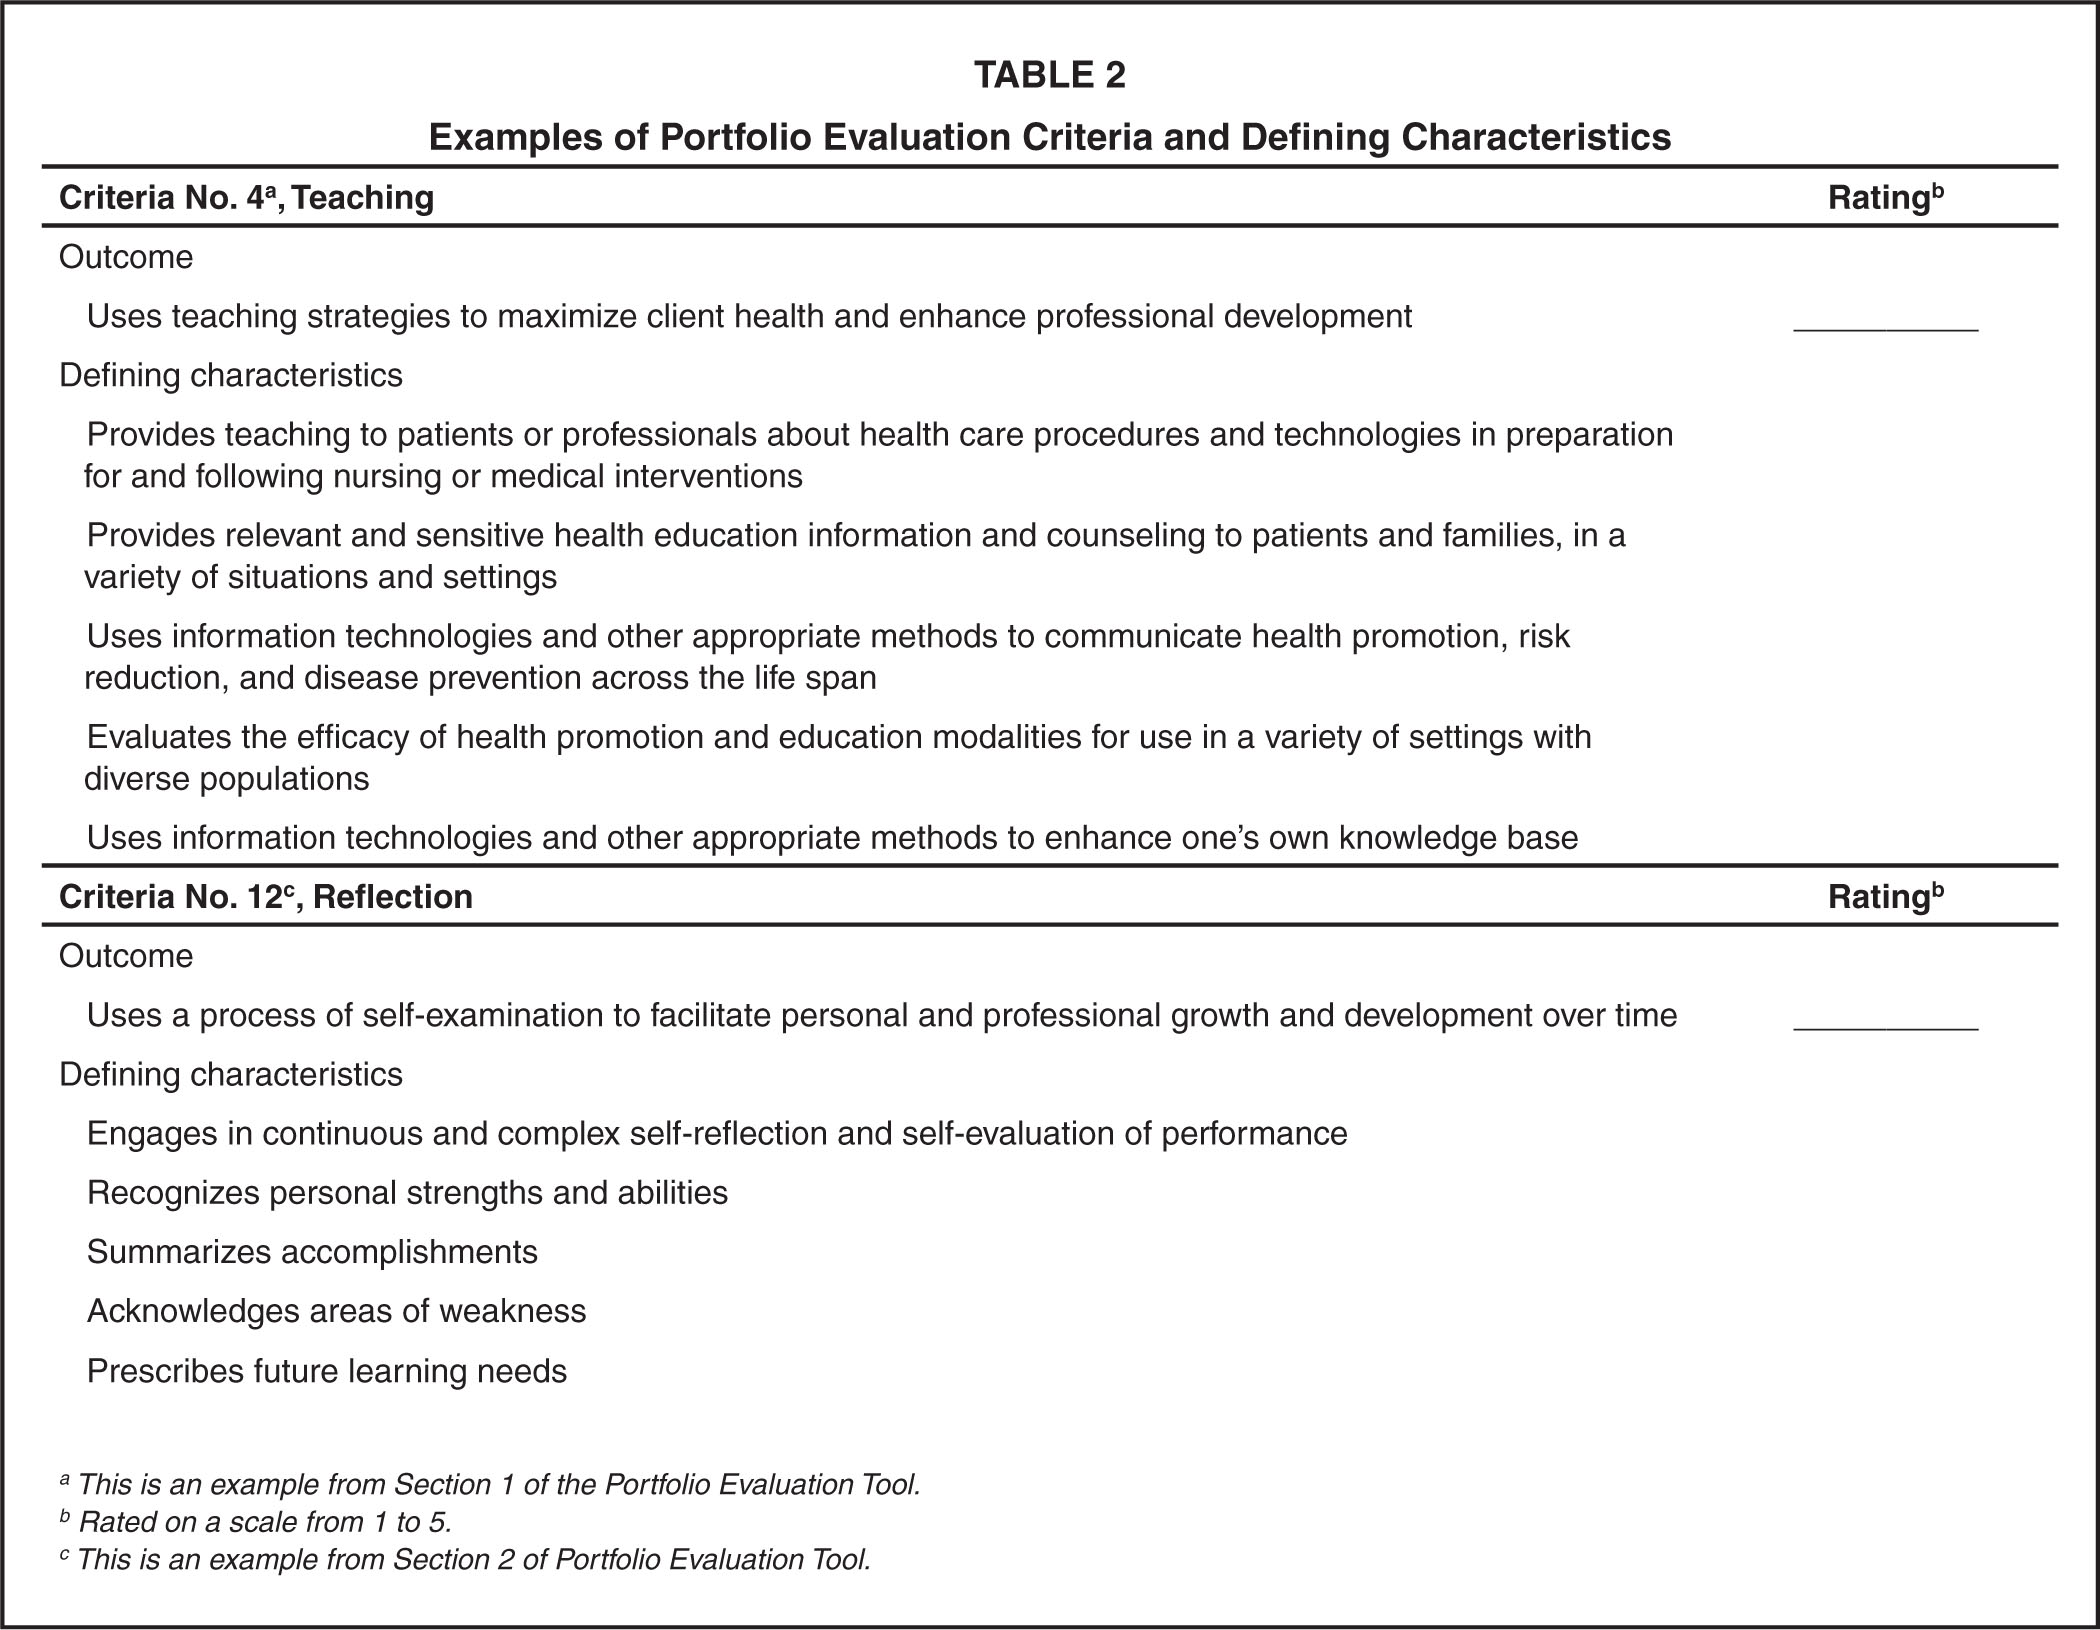 Examples of Portfolio Evaluation Criteria and Defining Characteristics